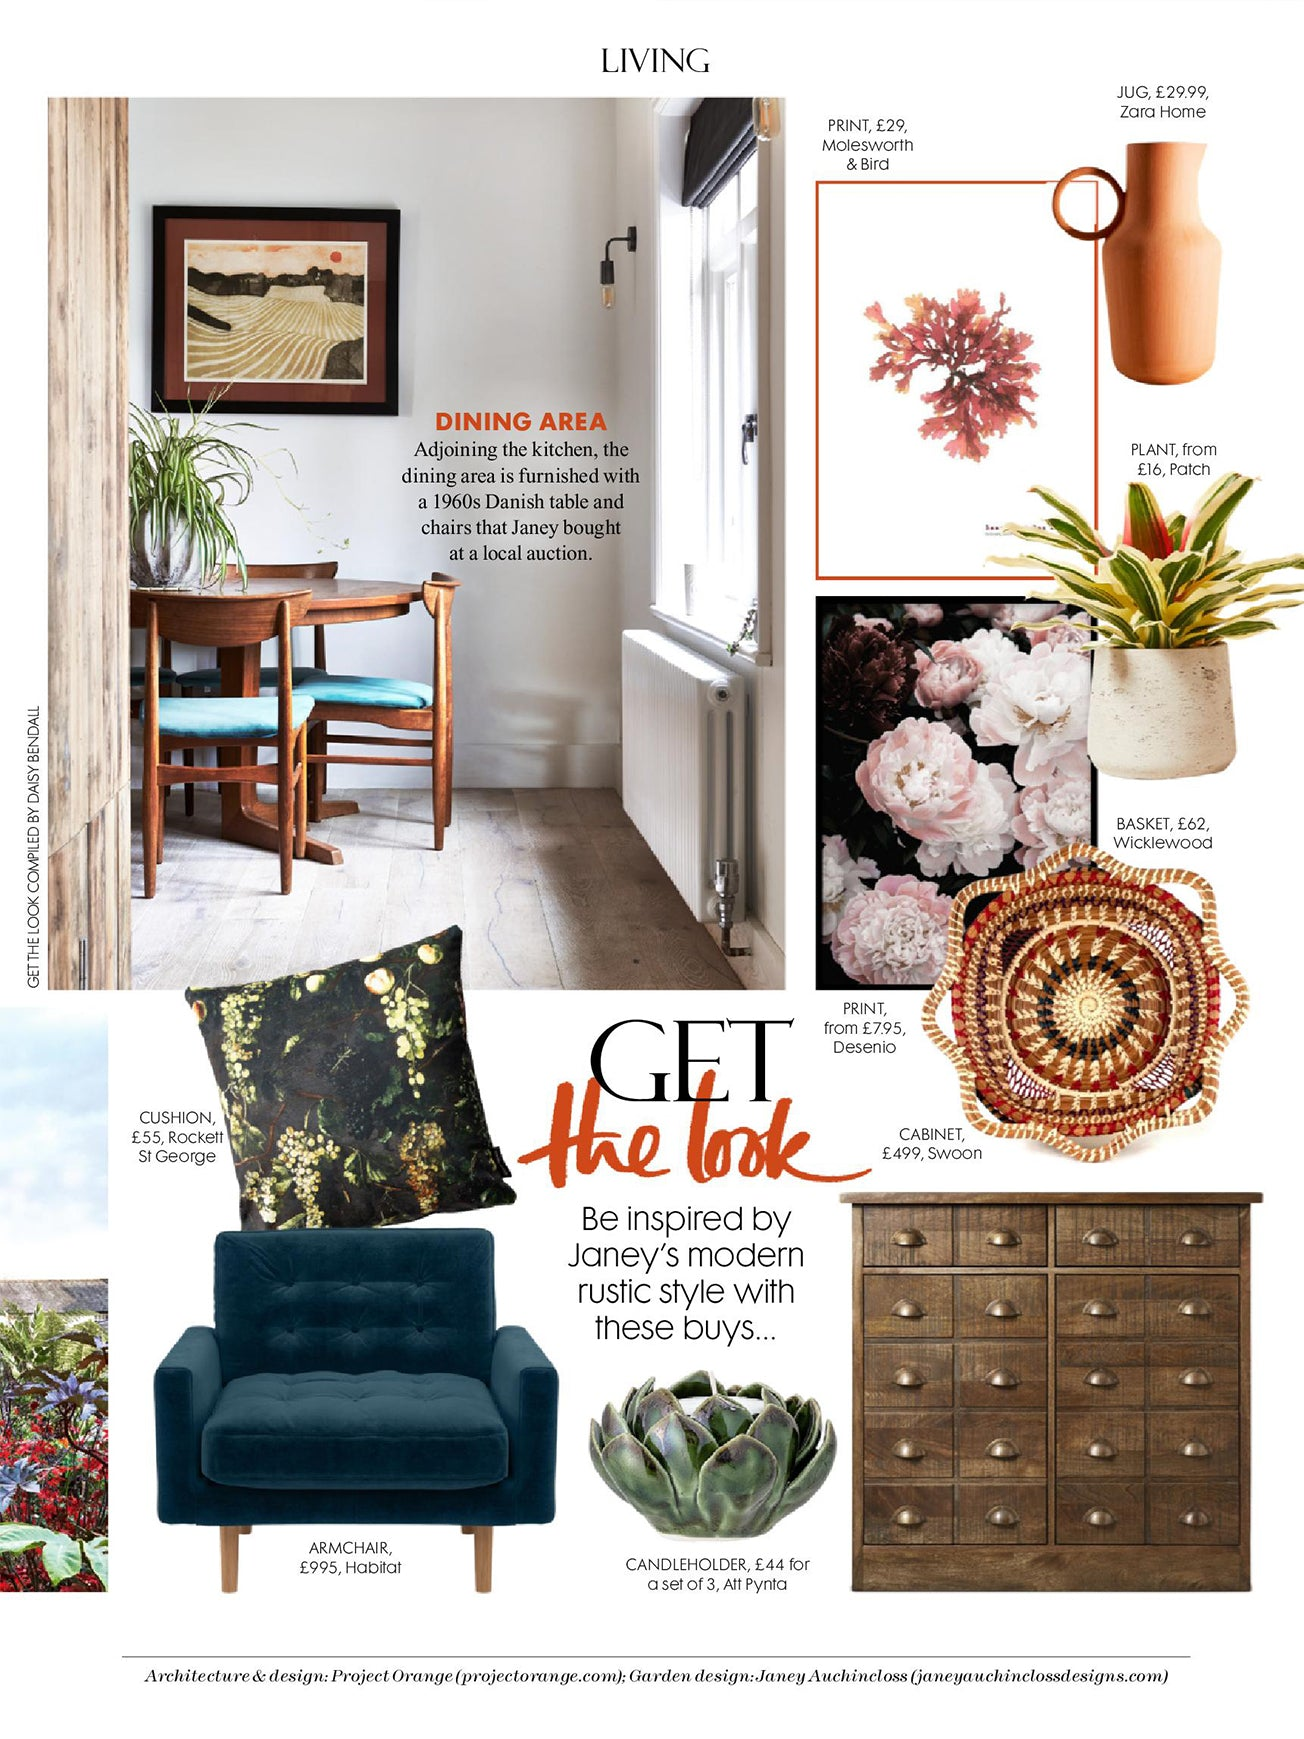 Wicklewood guatemalan basket featured in Red Magazine